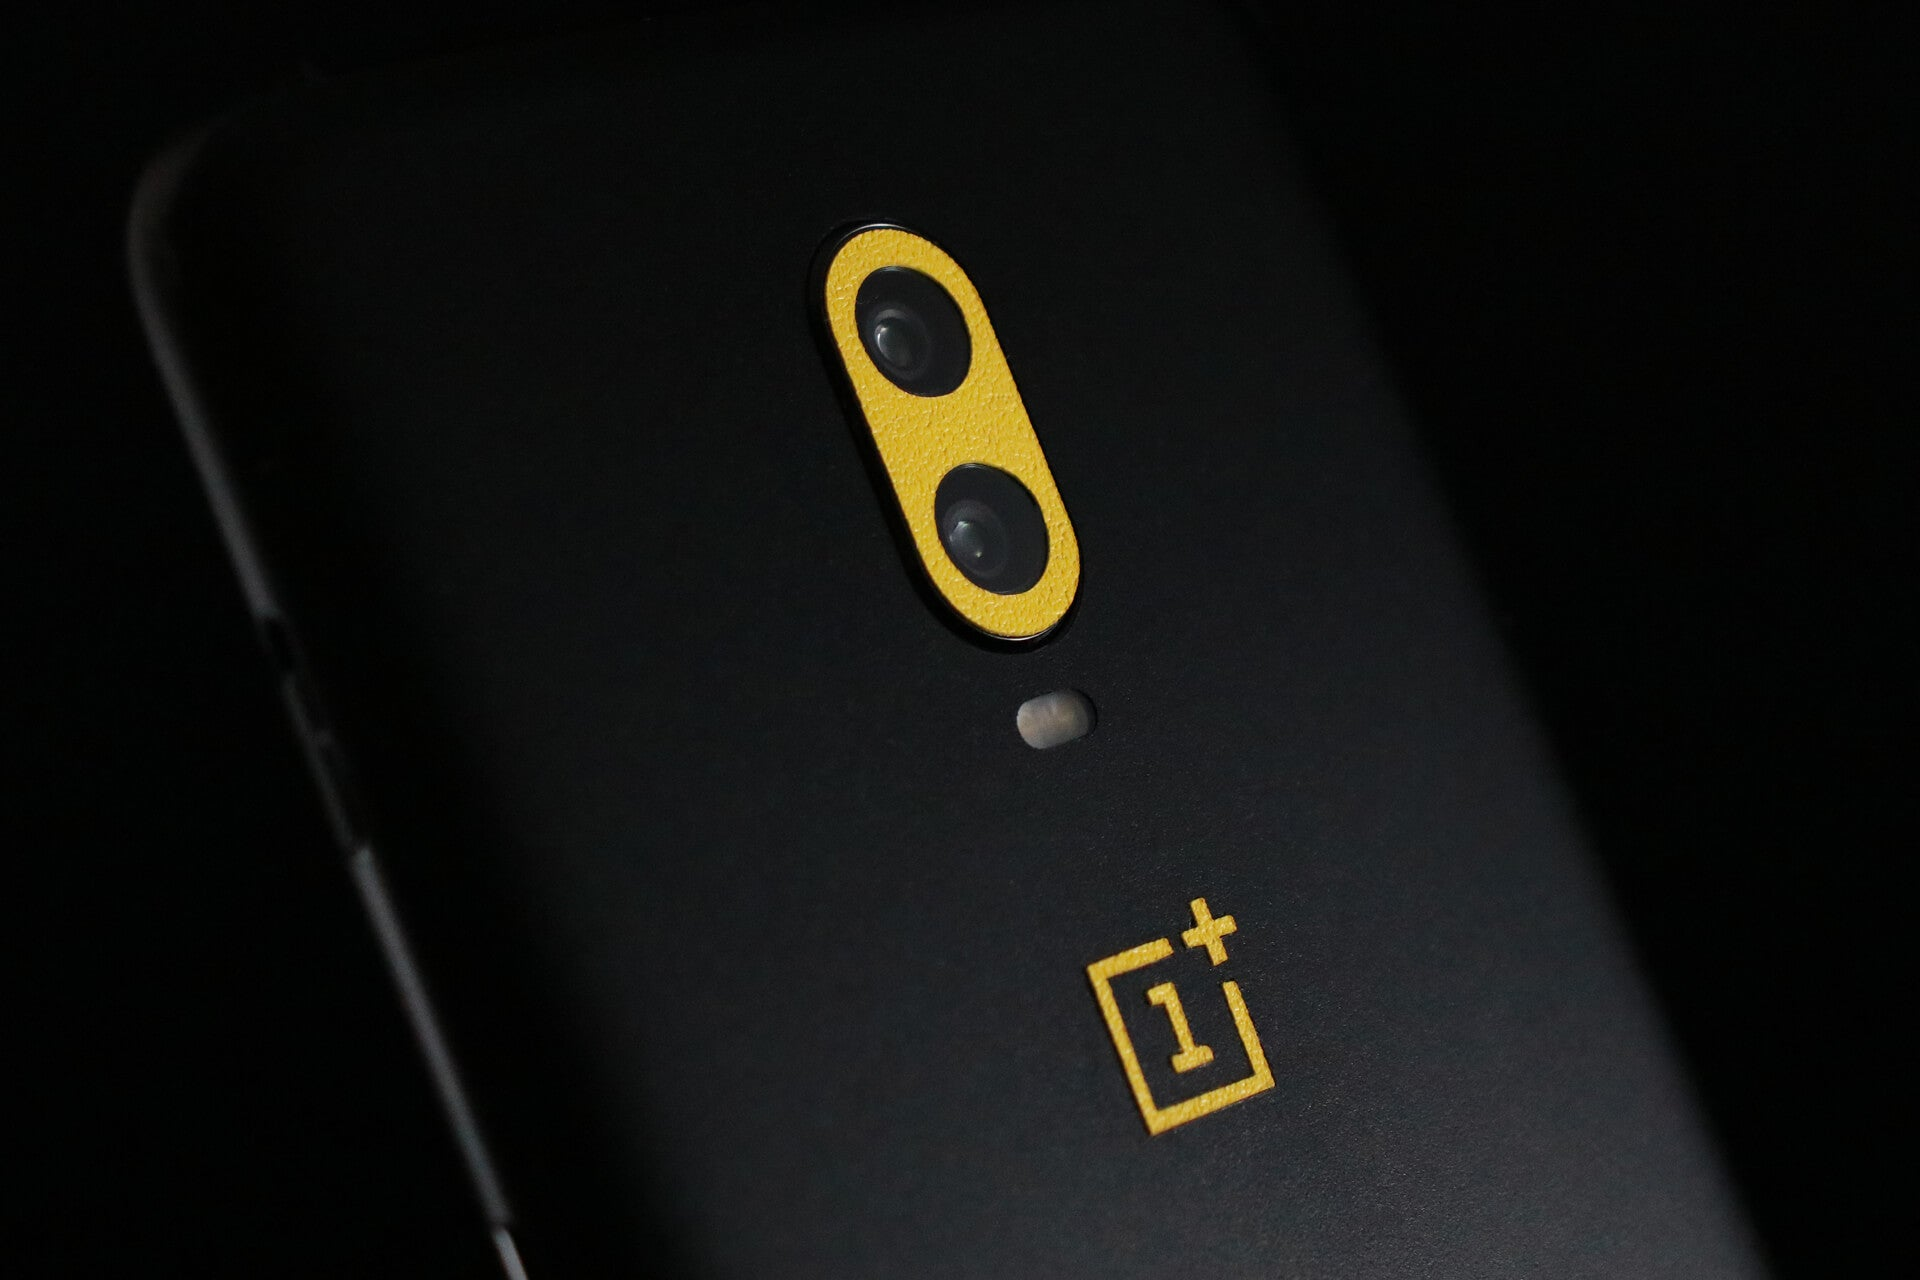 OnePlus 6T Matt Black and True Colour Yellow Skins